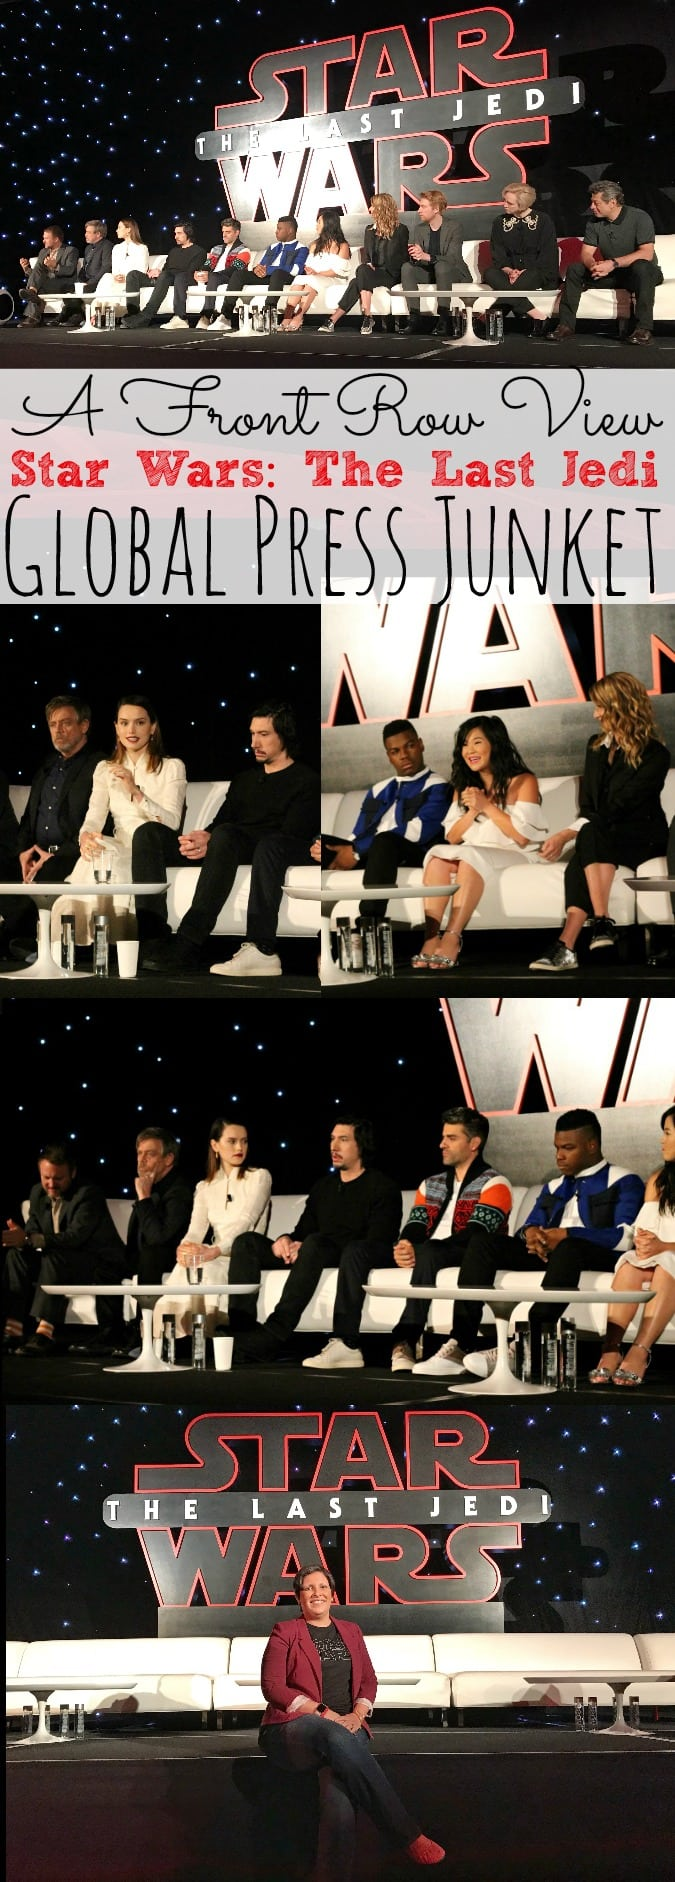 A Front Row View At Star Wars: The Last Jedi Global Press Junket #TheLastJediEvent - simplytodaylife.com